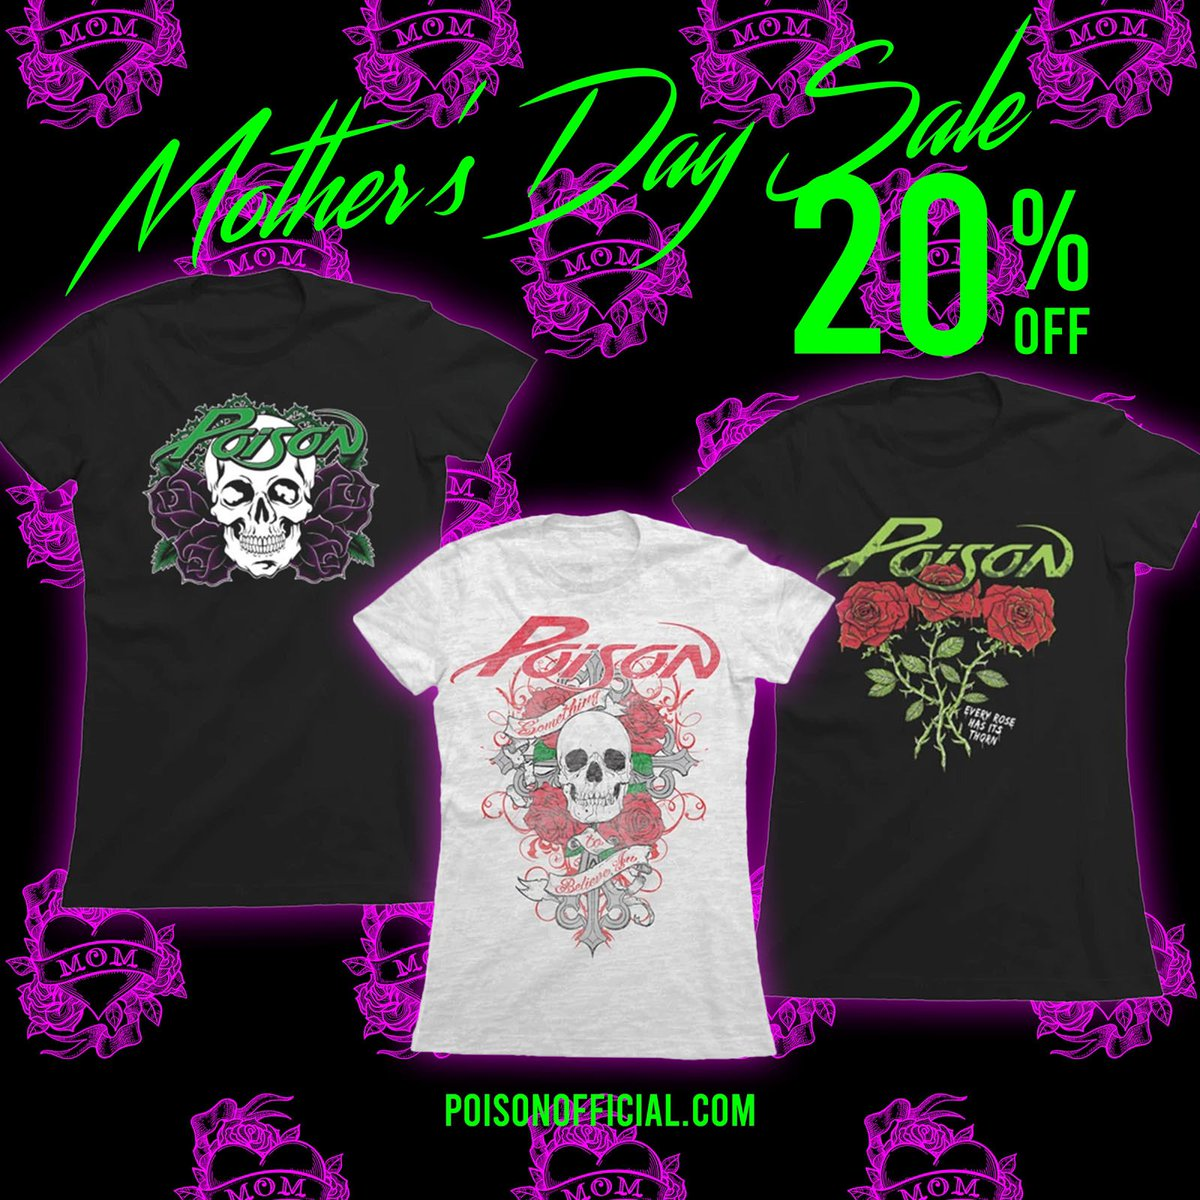 Get your mom something she really wants this Mother's Day 💚 Shop now: bit.ly/2KUcBCZ